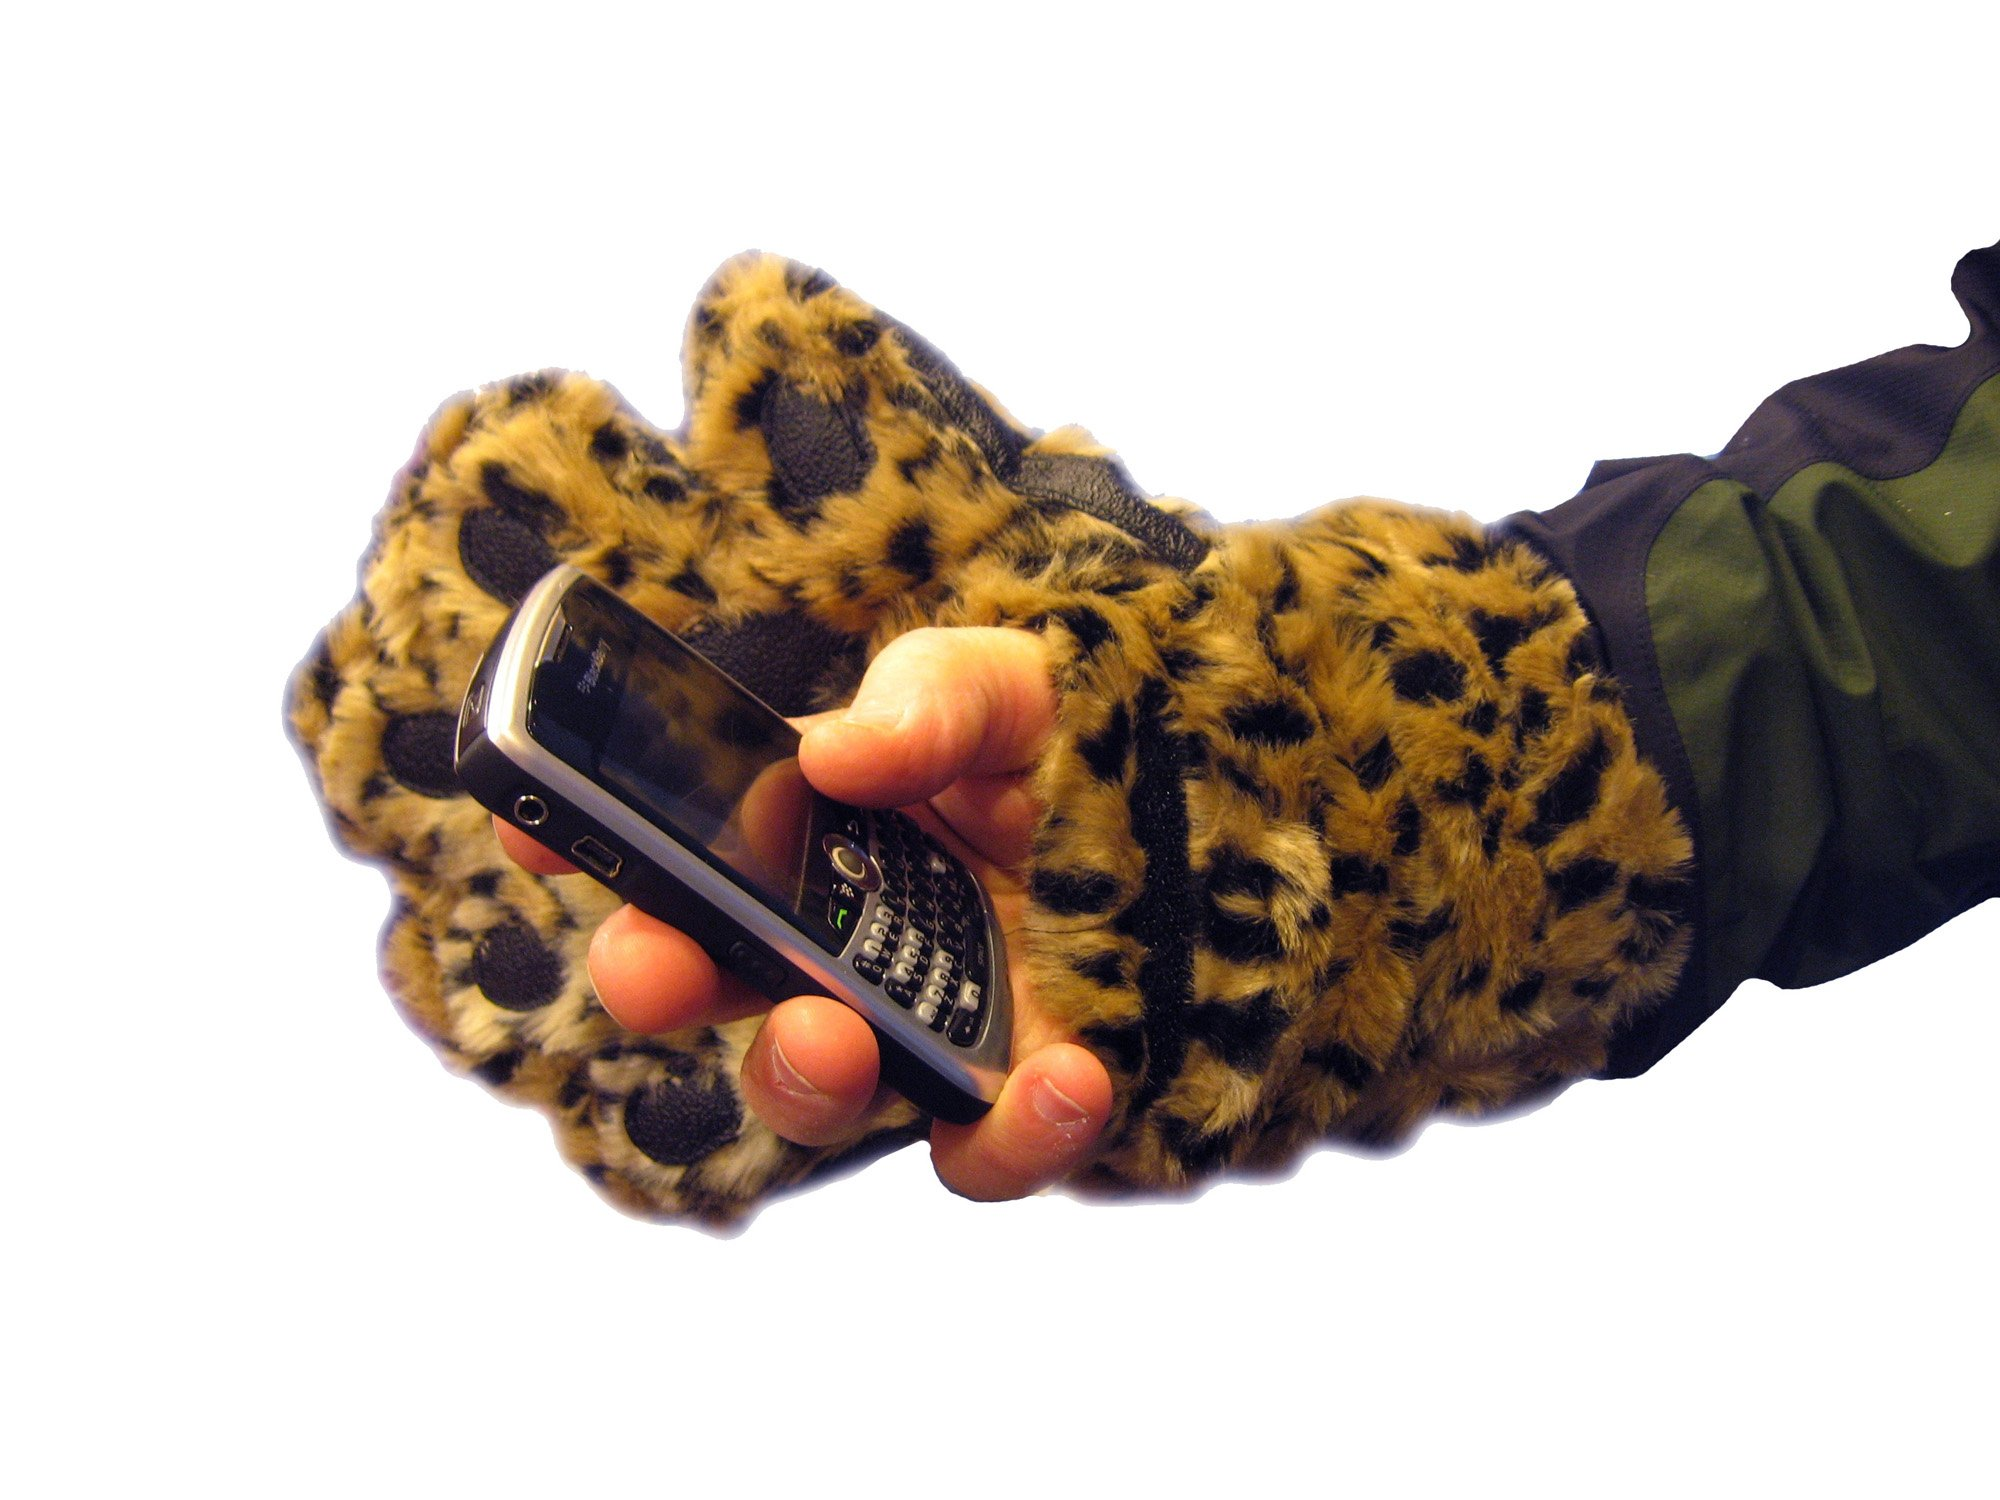 BearHands Sumptuous Faux Fur Mittens - with handy flap opening for when fingers are needed! (Adult Large) - Leopard